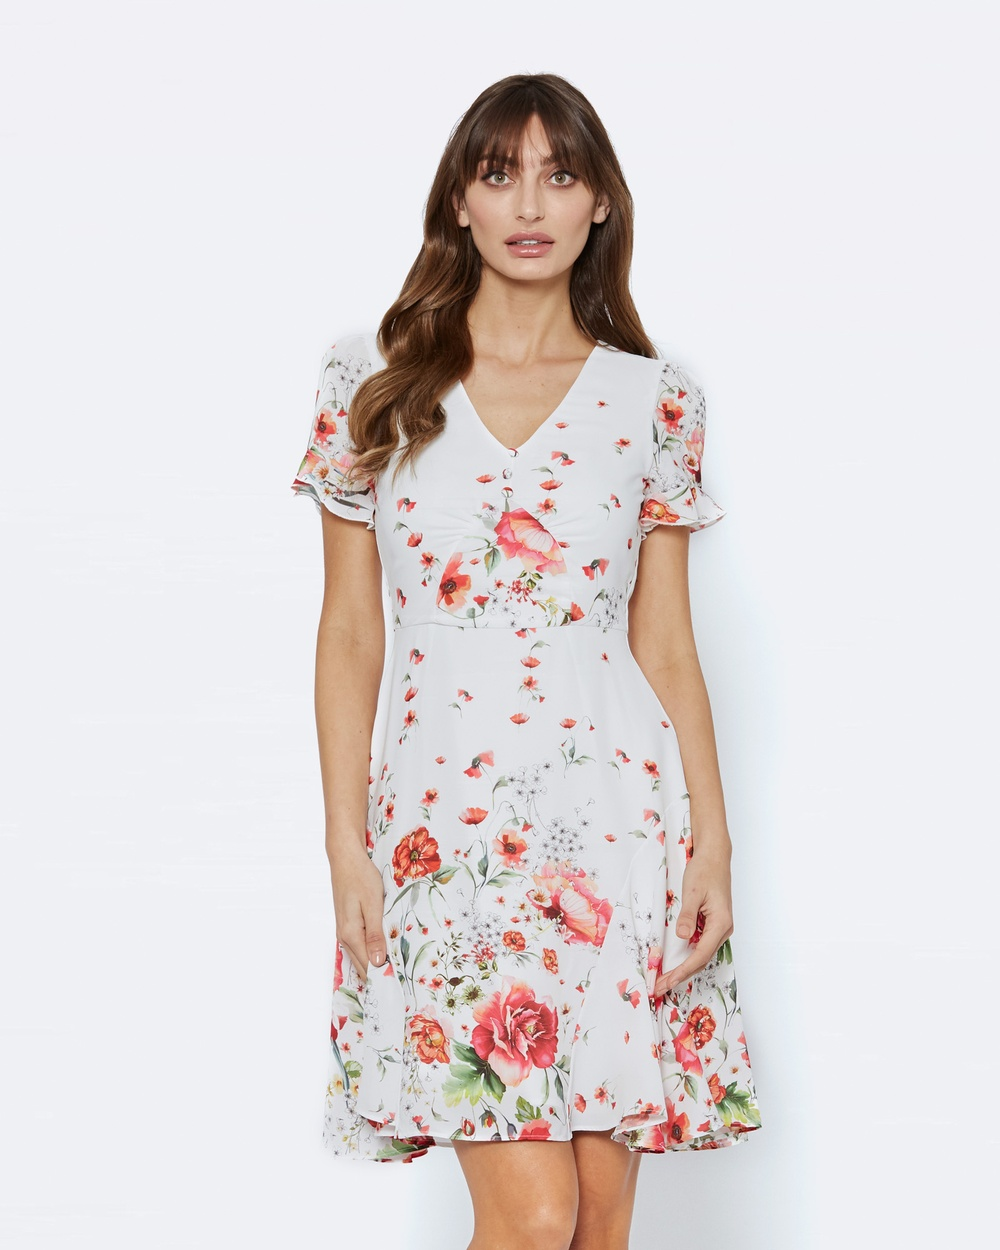 Alannah Hill Down In The Meadow Dress Printed Dresses White Down In The Meadow Dress